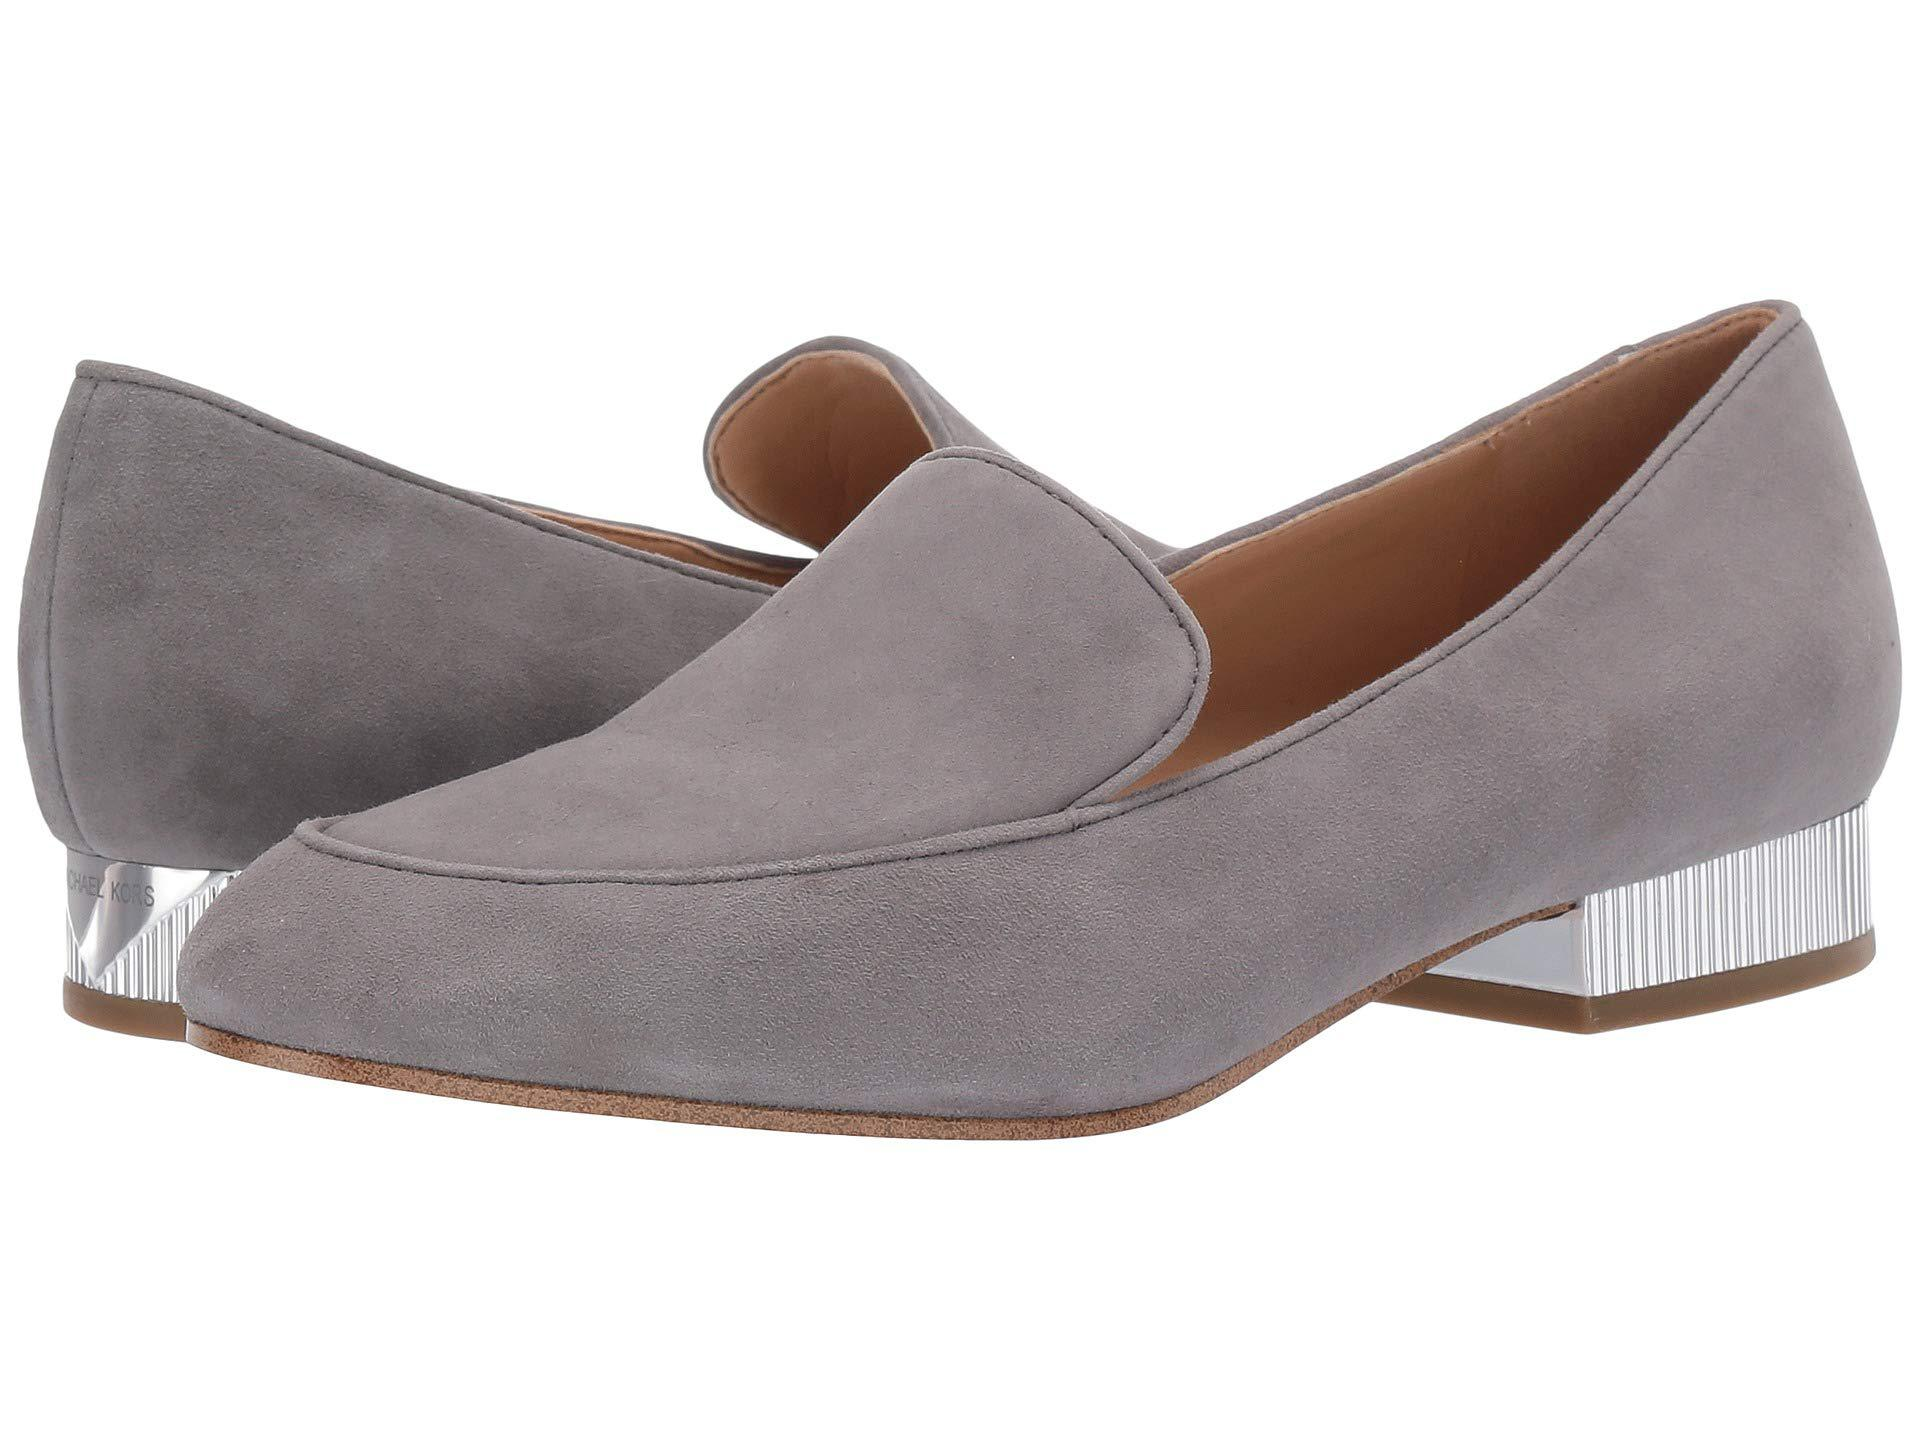 cfdaf26bfea Lyst - MICHAEL Michael Kors Valerie Slip-on in Gray